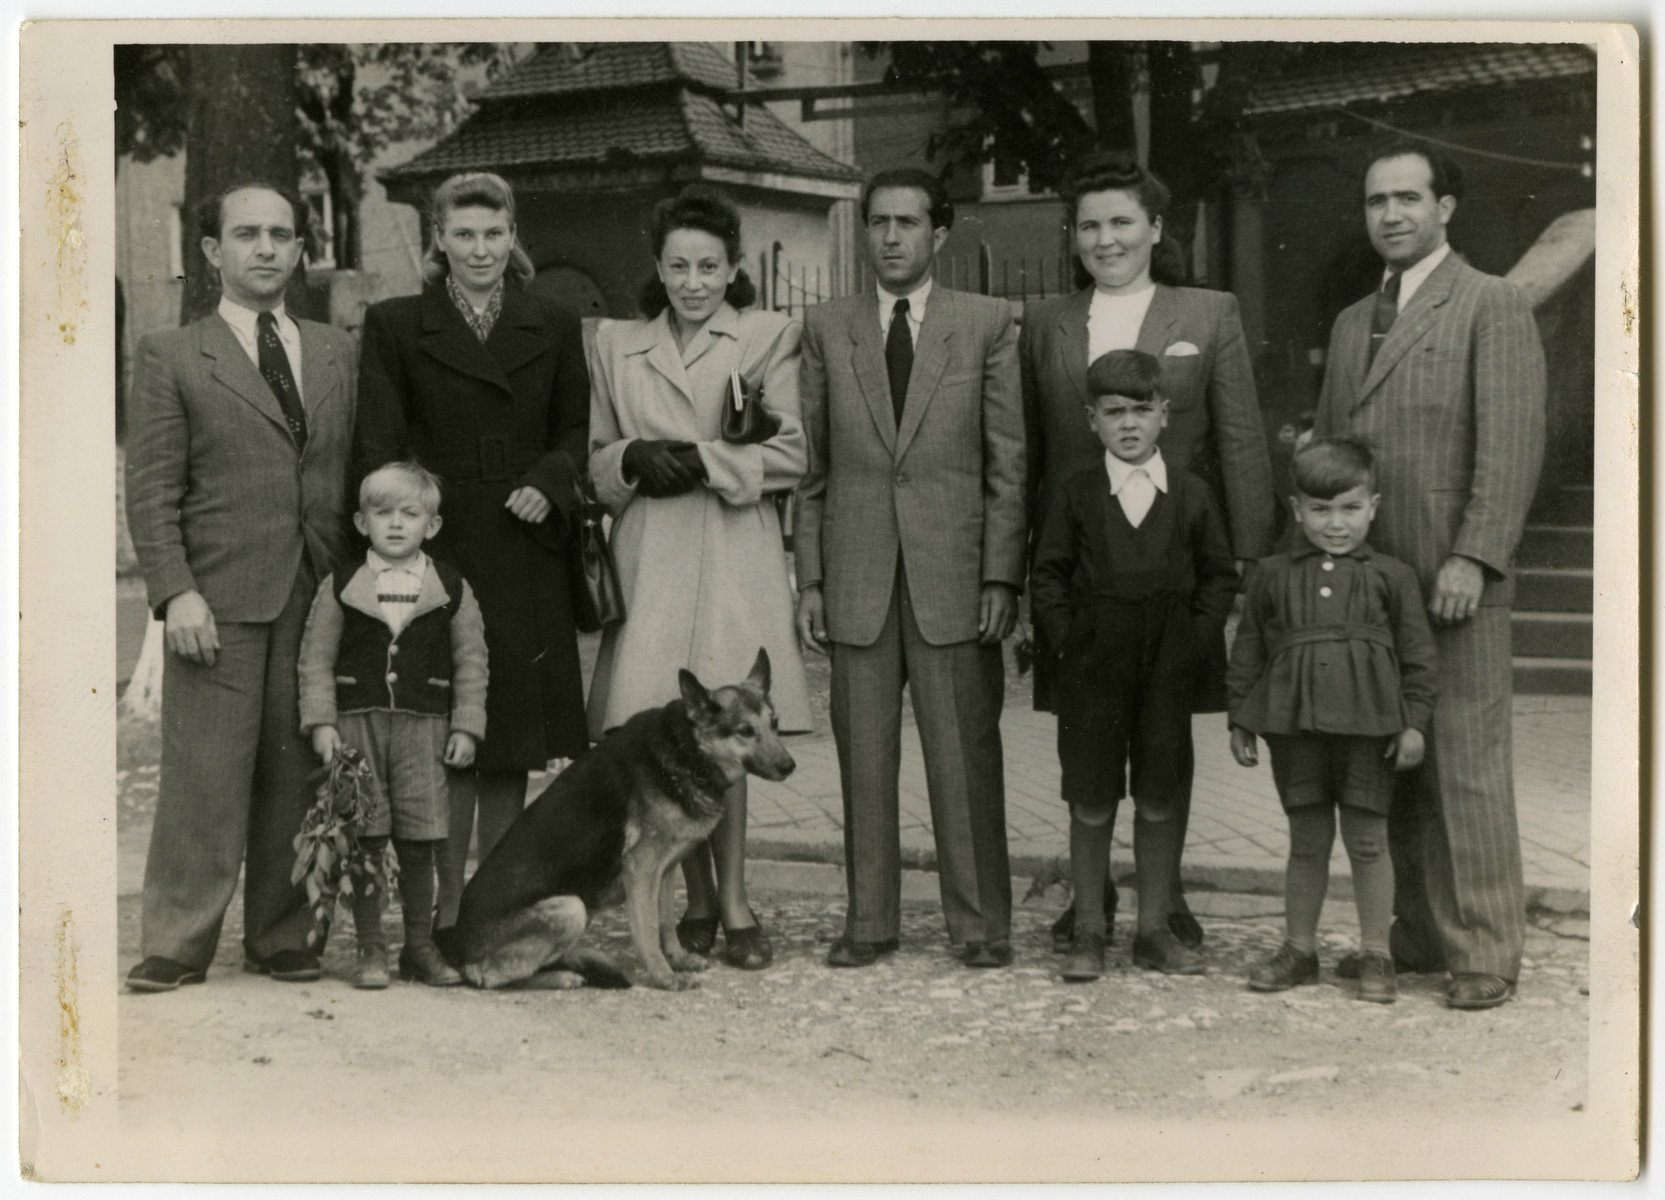 Group portrait of the Galicki and Kolman families in the Ulm displaced persons camp.  From left to right Meyer Kolman , wife Vera Kolman, Lucia Galicki, Ben Galicki, Lydia Gell, Noel Gell Bottom Kolya Kolman   Albert Gell, Paul Gell.  Vera Kolman was from Uzbekistan and Mayer was from Poland. They later immigrated to Sao Paulo, Brazil.